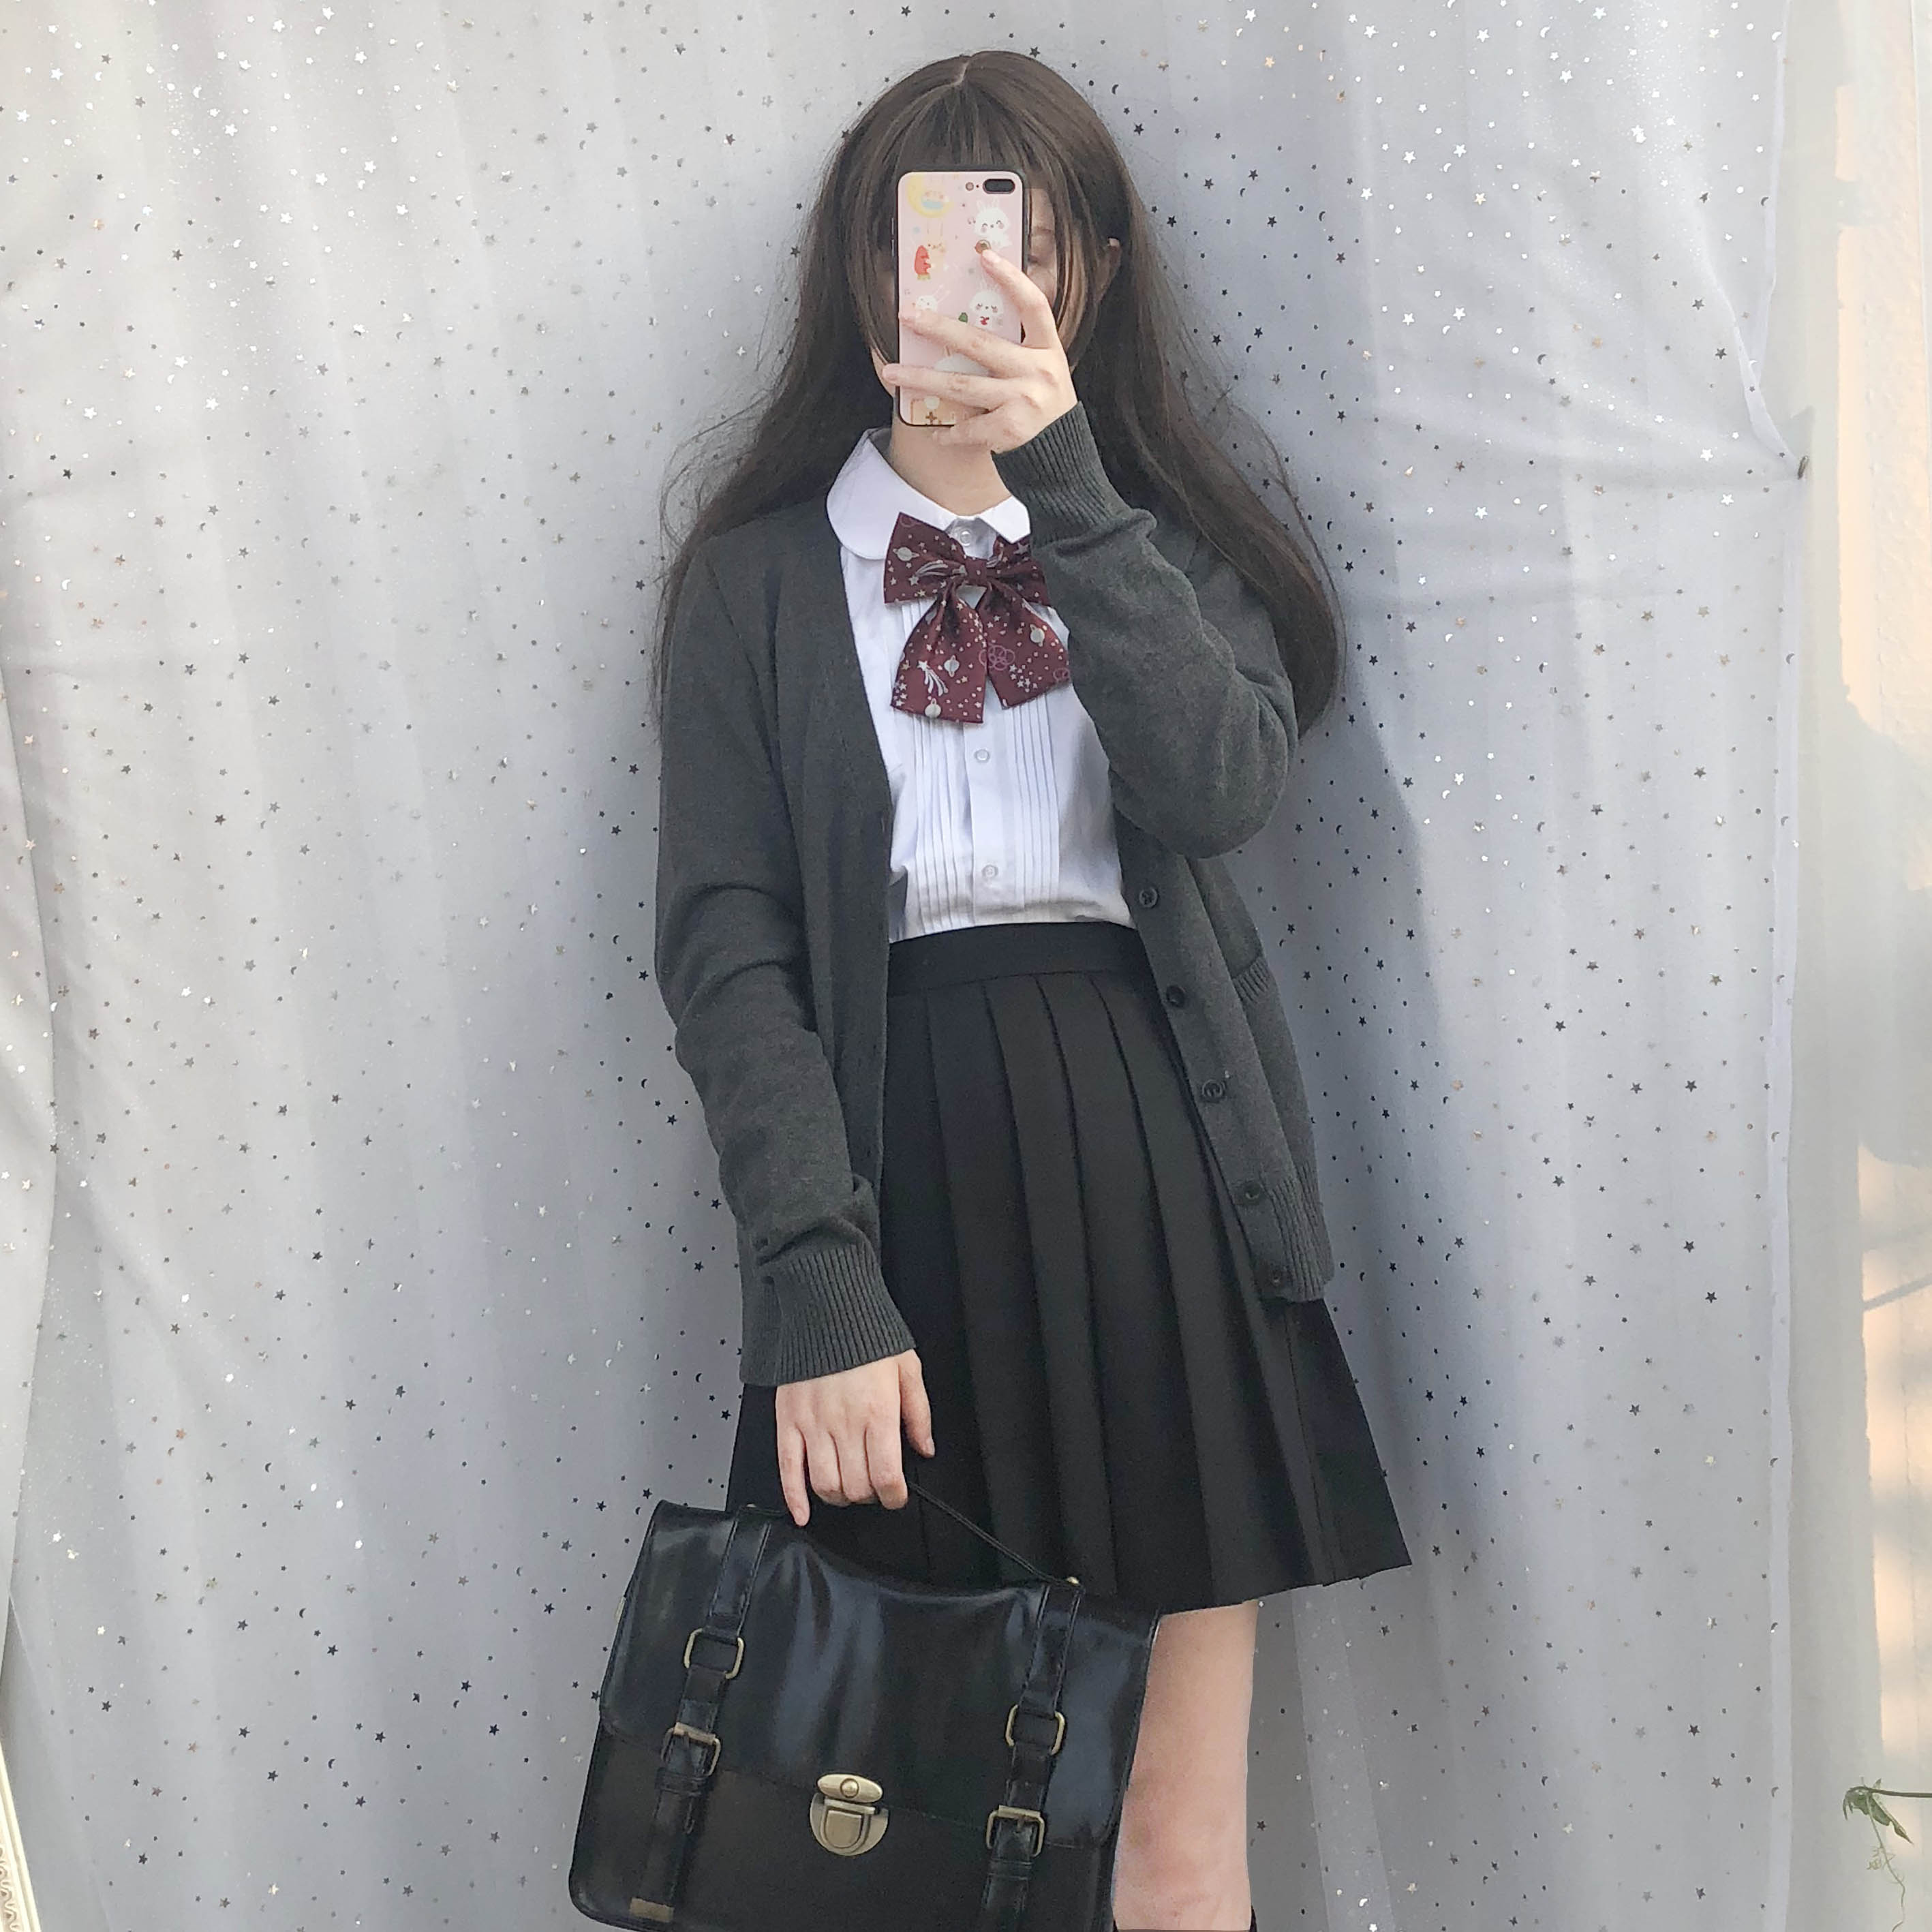 Japanese girl jk uniform long sleeved autumn and winter round neck shirt black pleated skirt knit